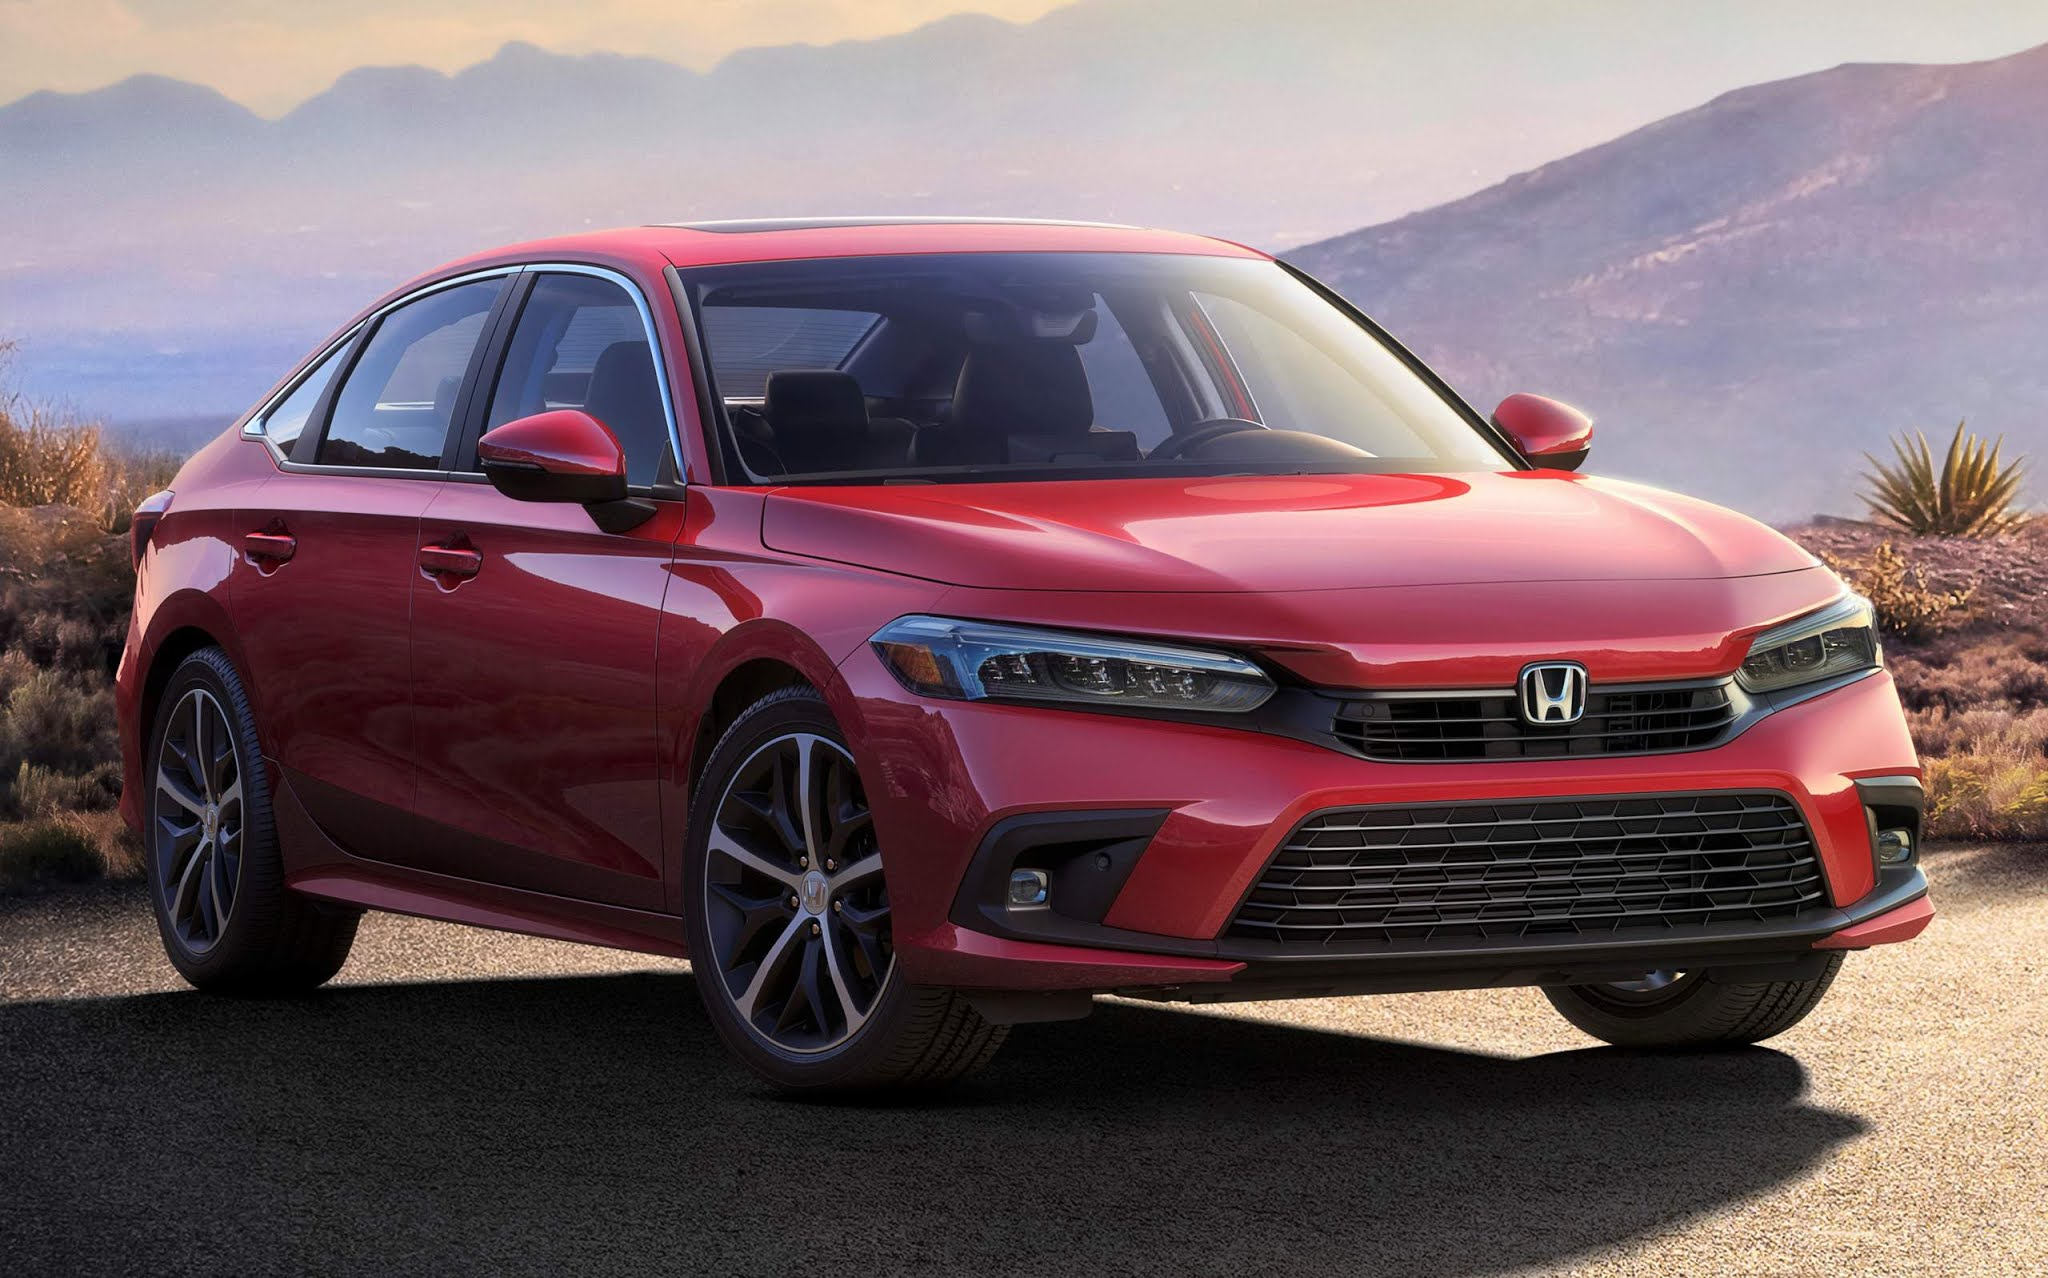 The Honda Civic is one of the longest-running JDM cars. What started as a compact hatch is now a luxury sedan. Honda has now unveiled its eleventh generation avatar.   There are no details yet, but we might find them out on April 28. https://t.co/d0aJ0yY4kZ